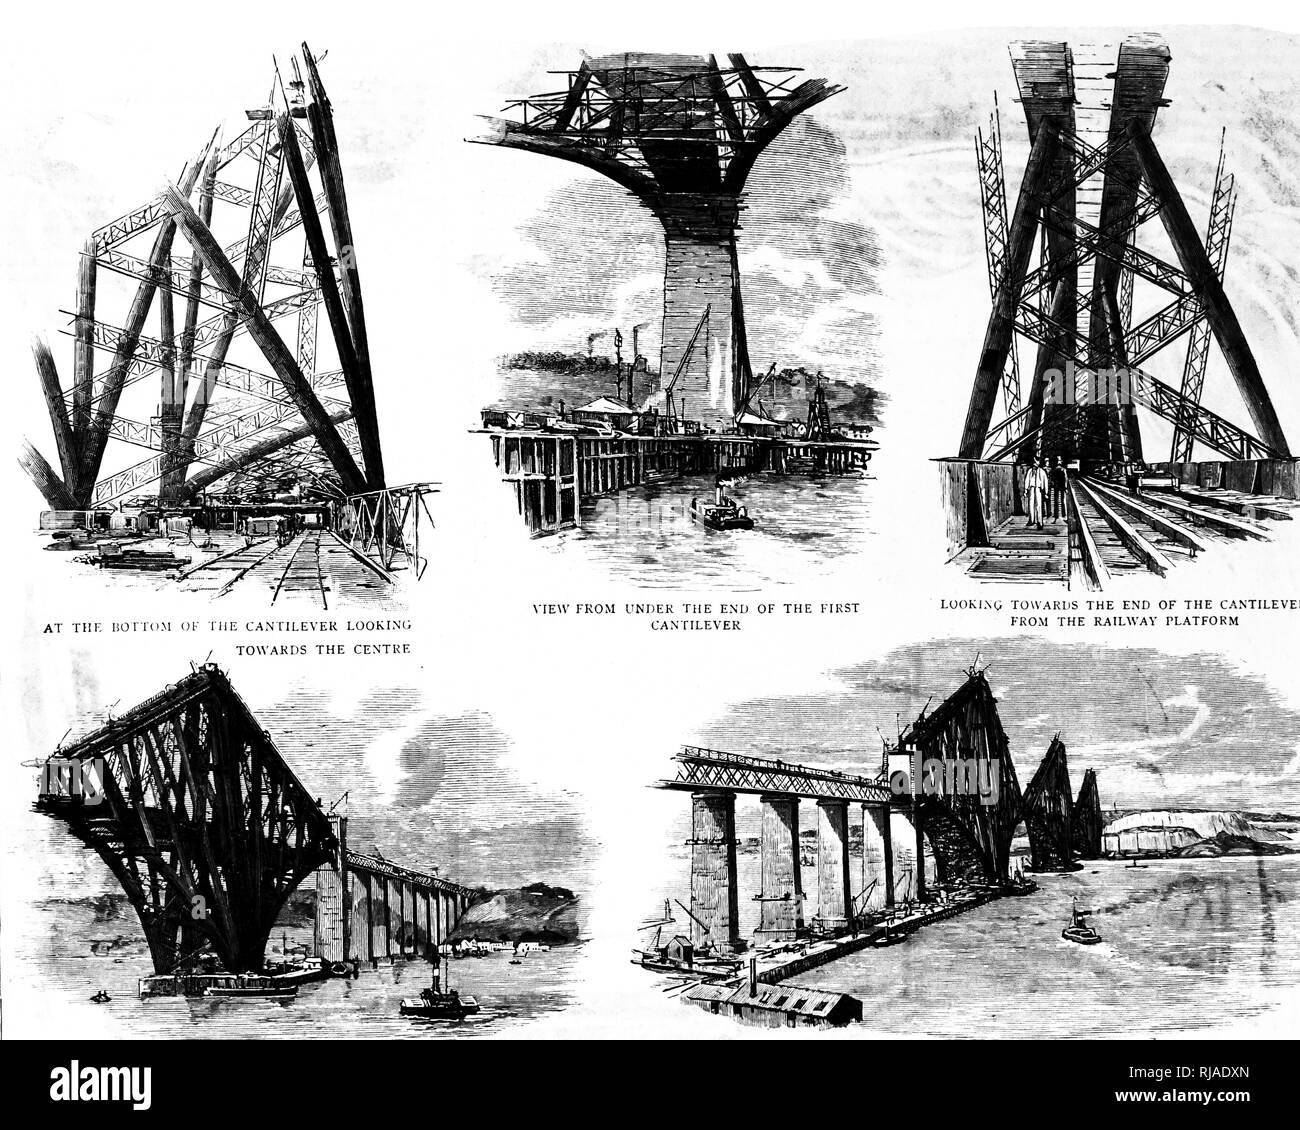 An engraving depicting various cantilevers, a long projecting beam or girder fixed at only one end, used in bridge construction, along railway lines. Dated 19th century Stock Photo